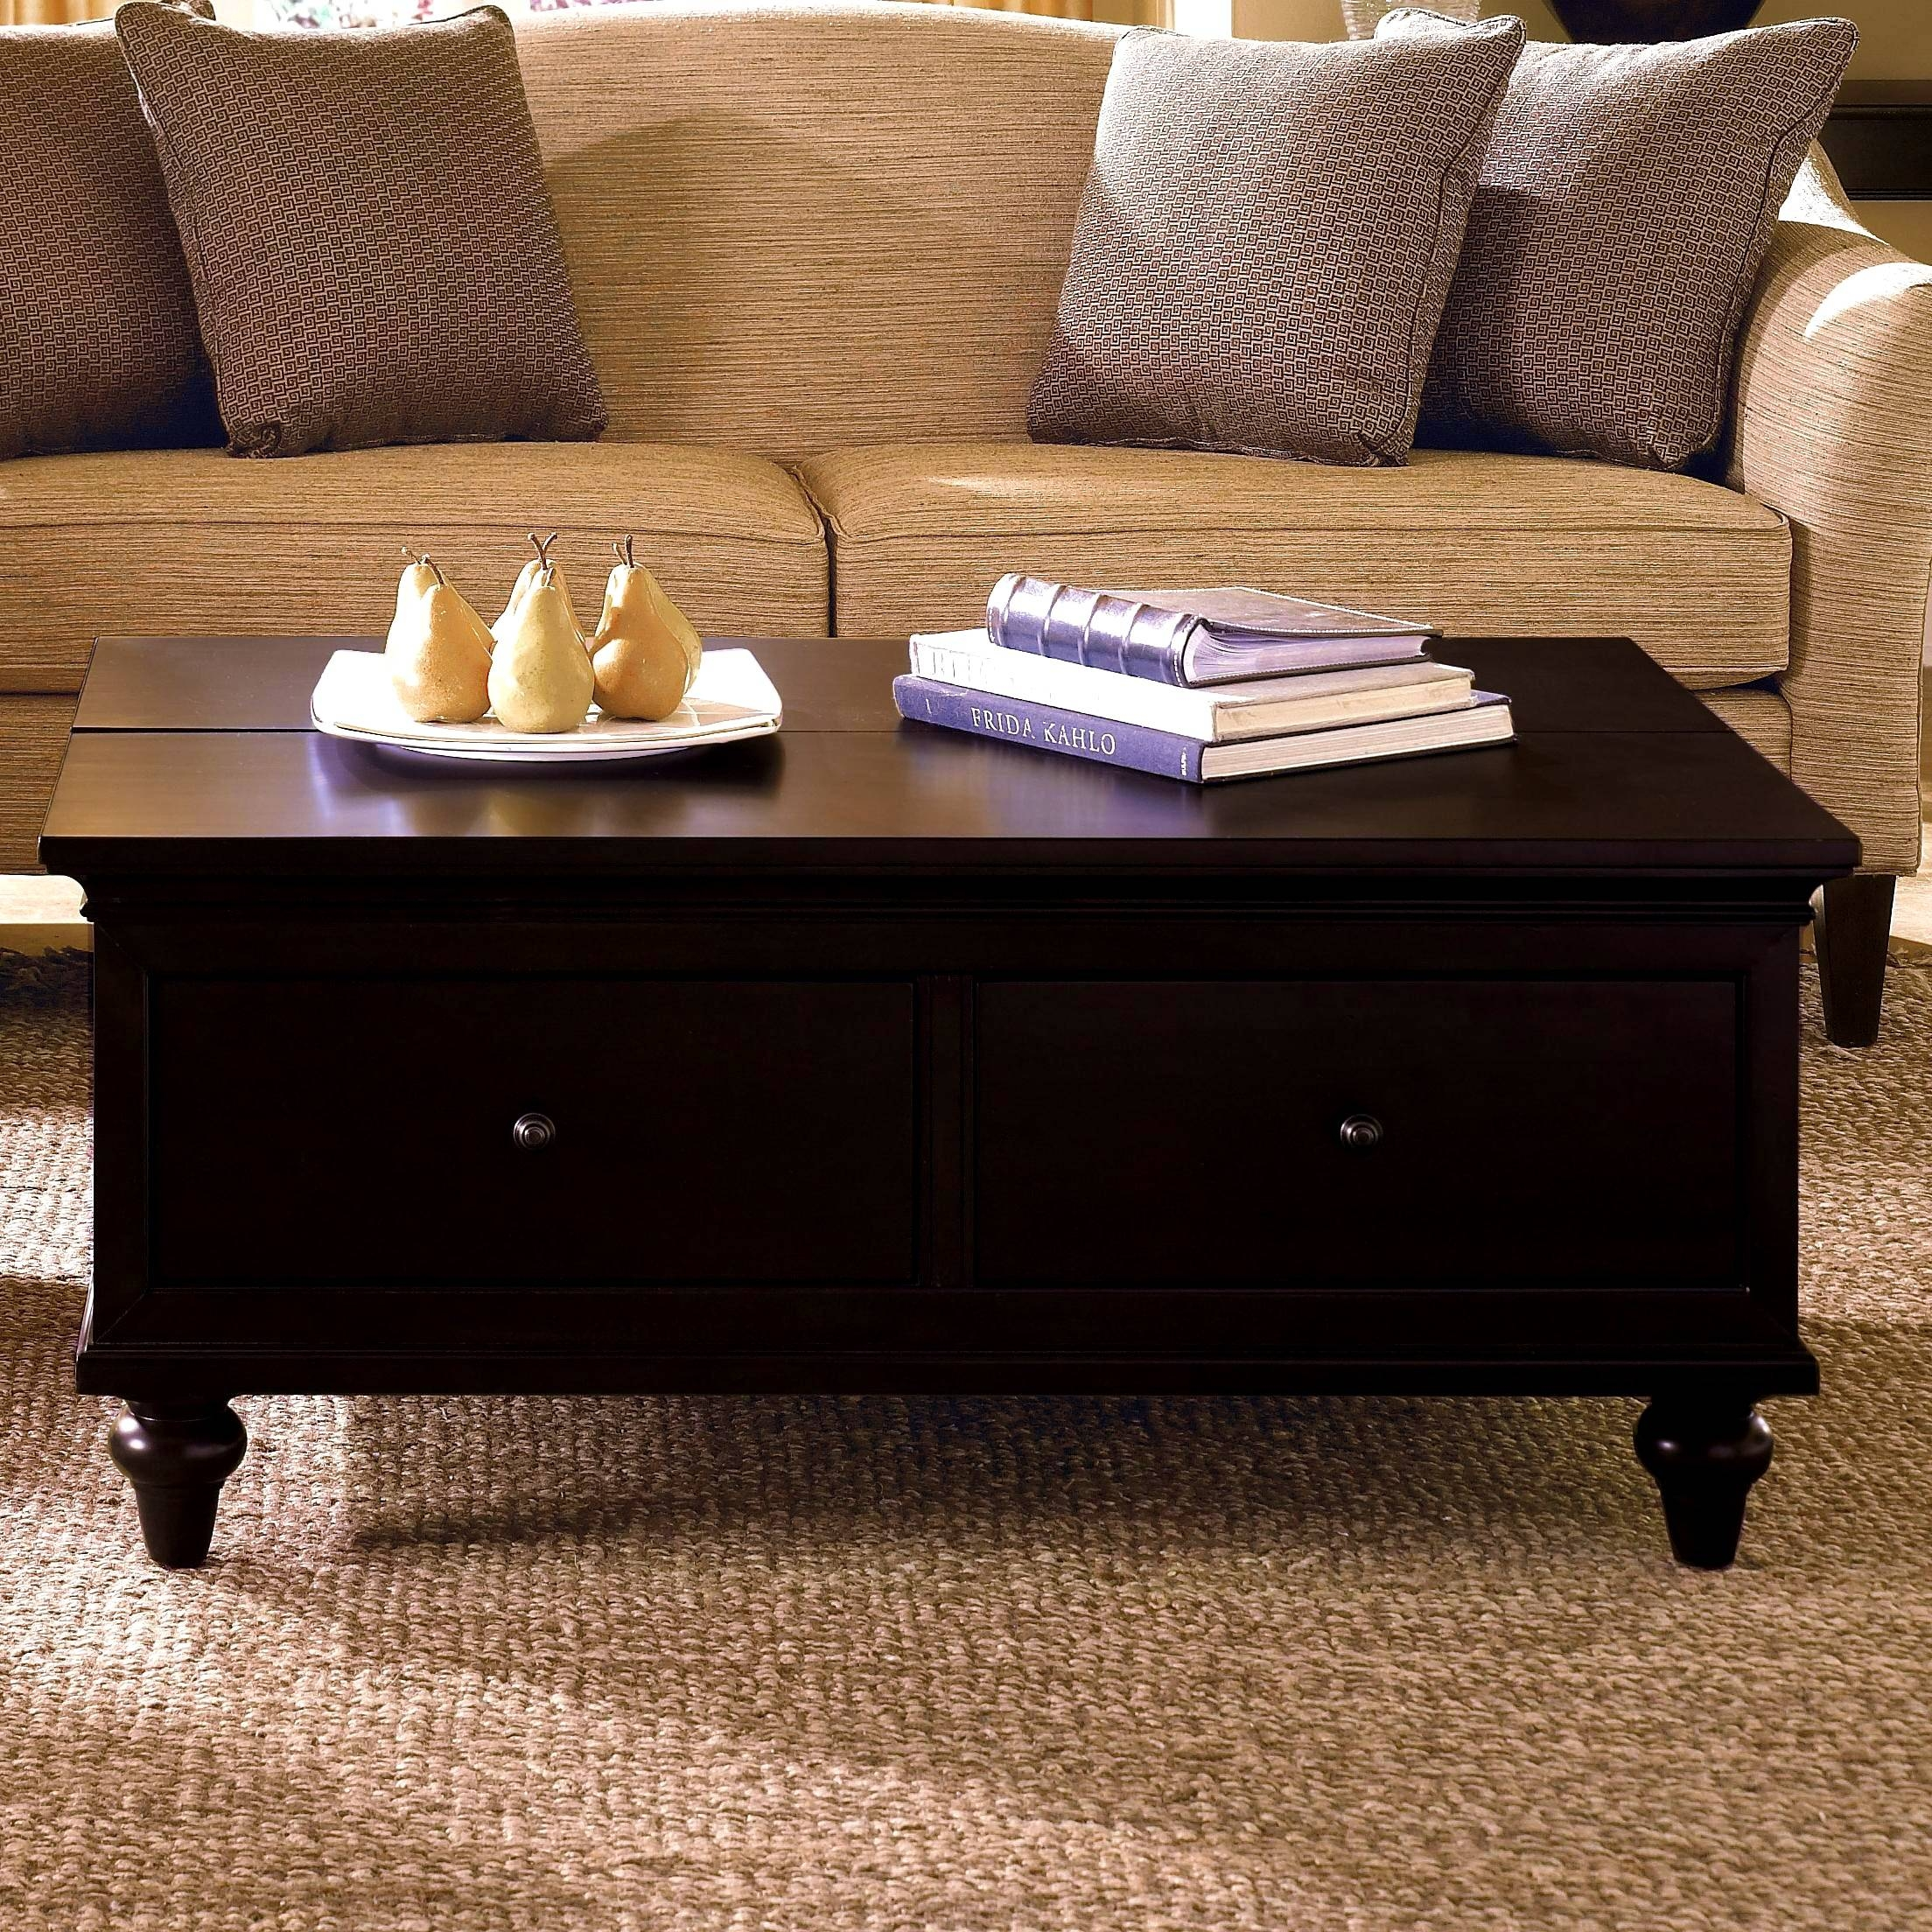 Excellent Square Coffee Tables With Storage Pictures Decoration throughout Square Coffee Tables With Drawers (Image 14 of 30)